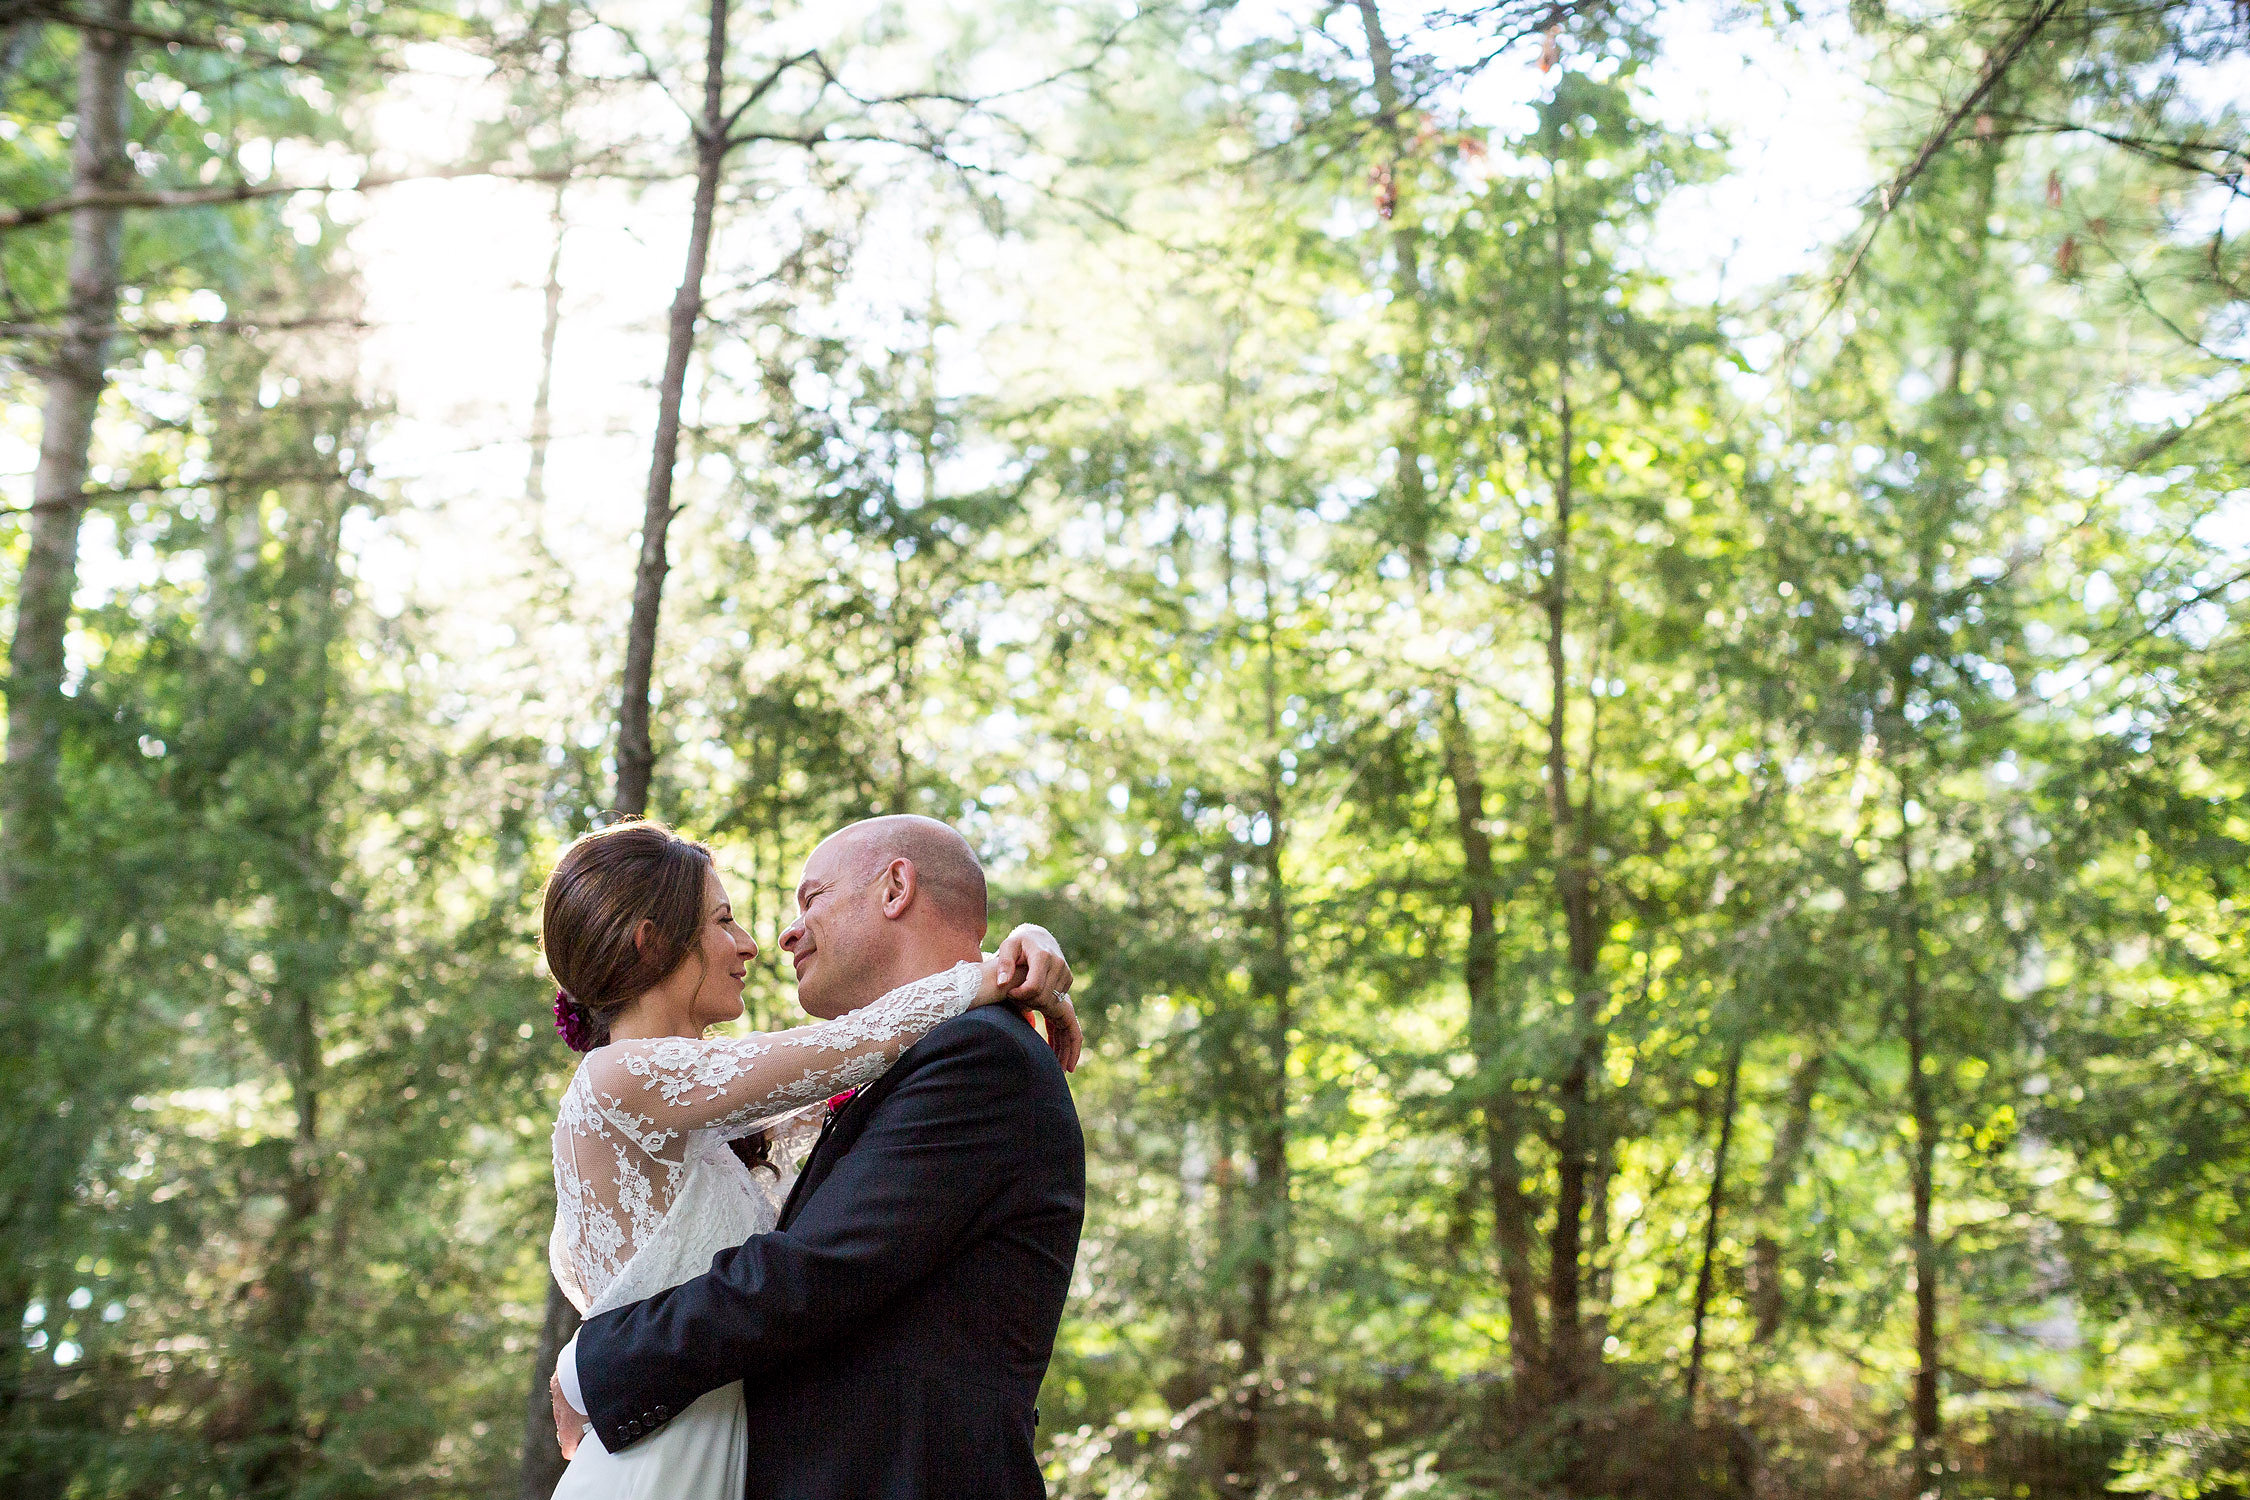 Photo by Vermont wedding photographer Stina Booth of a couple embracing in a portrait in the woods of Woods Hollow in Westford Vermont